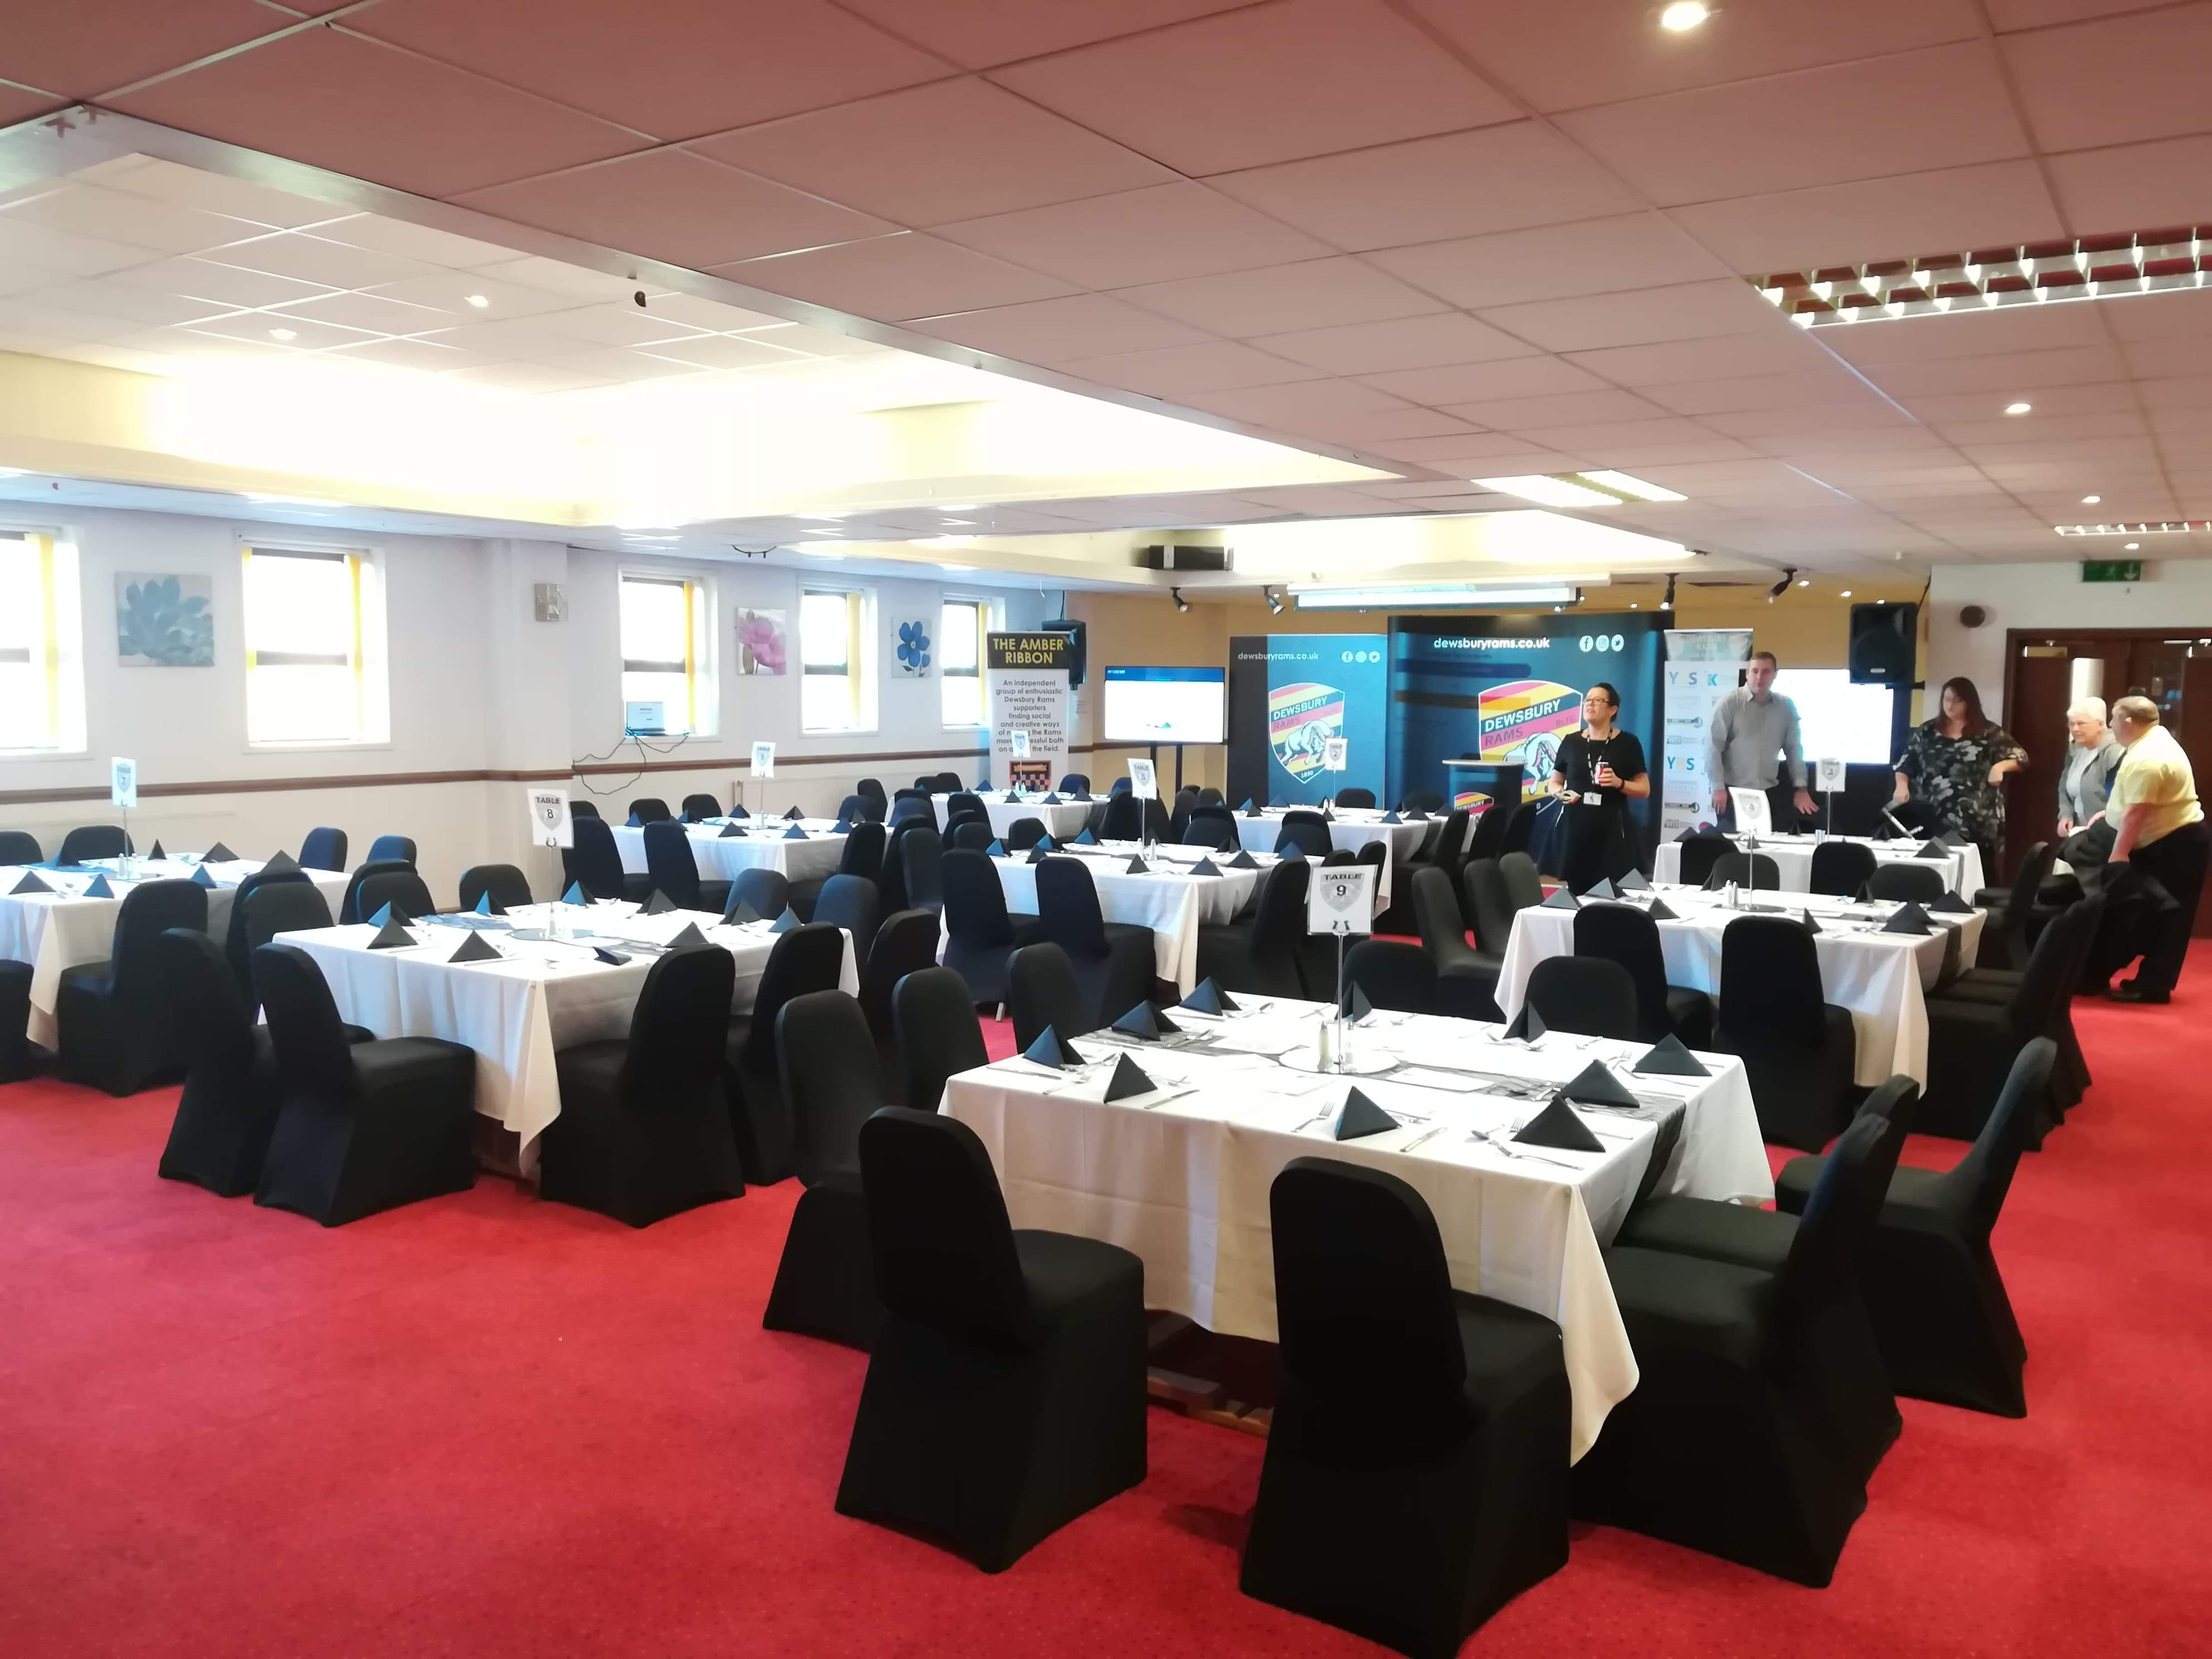 Fantastic hospitality package for Widnes fixture